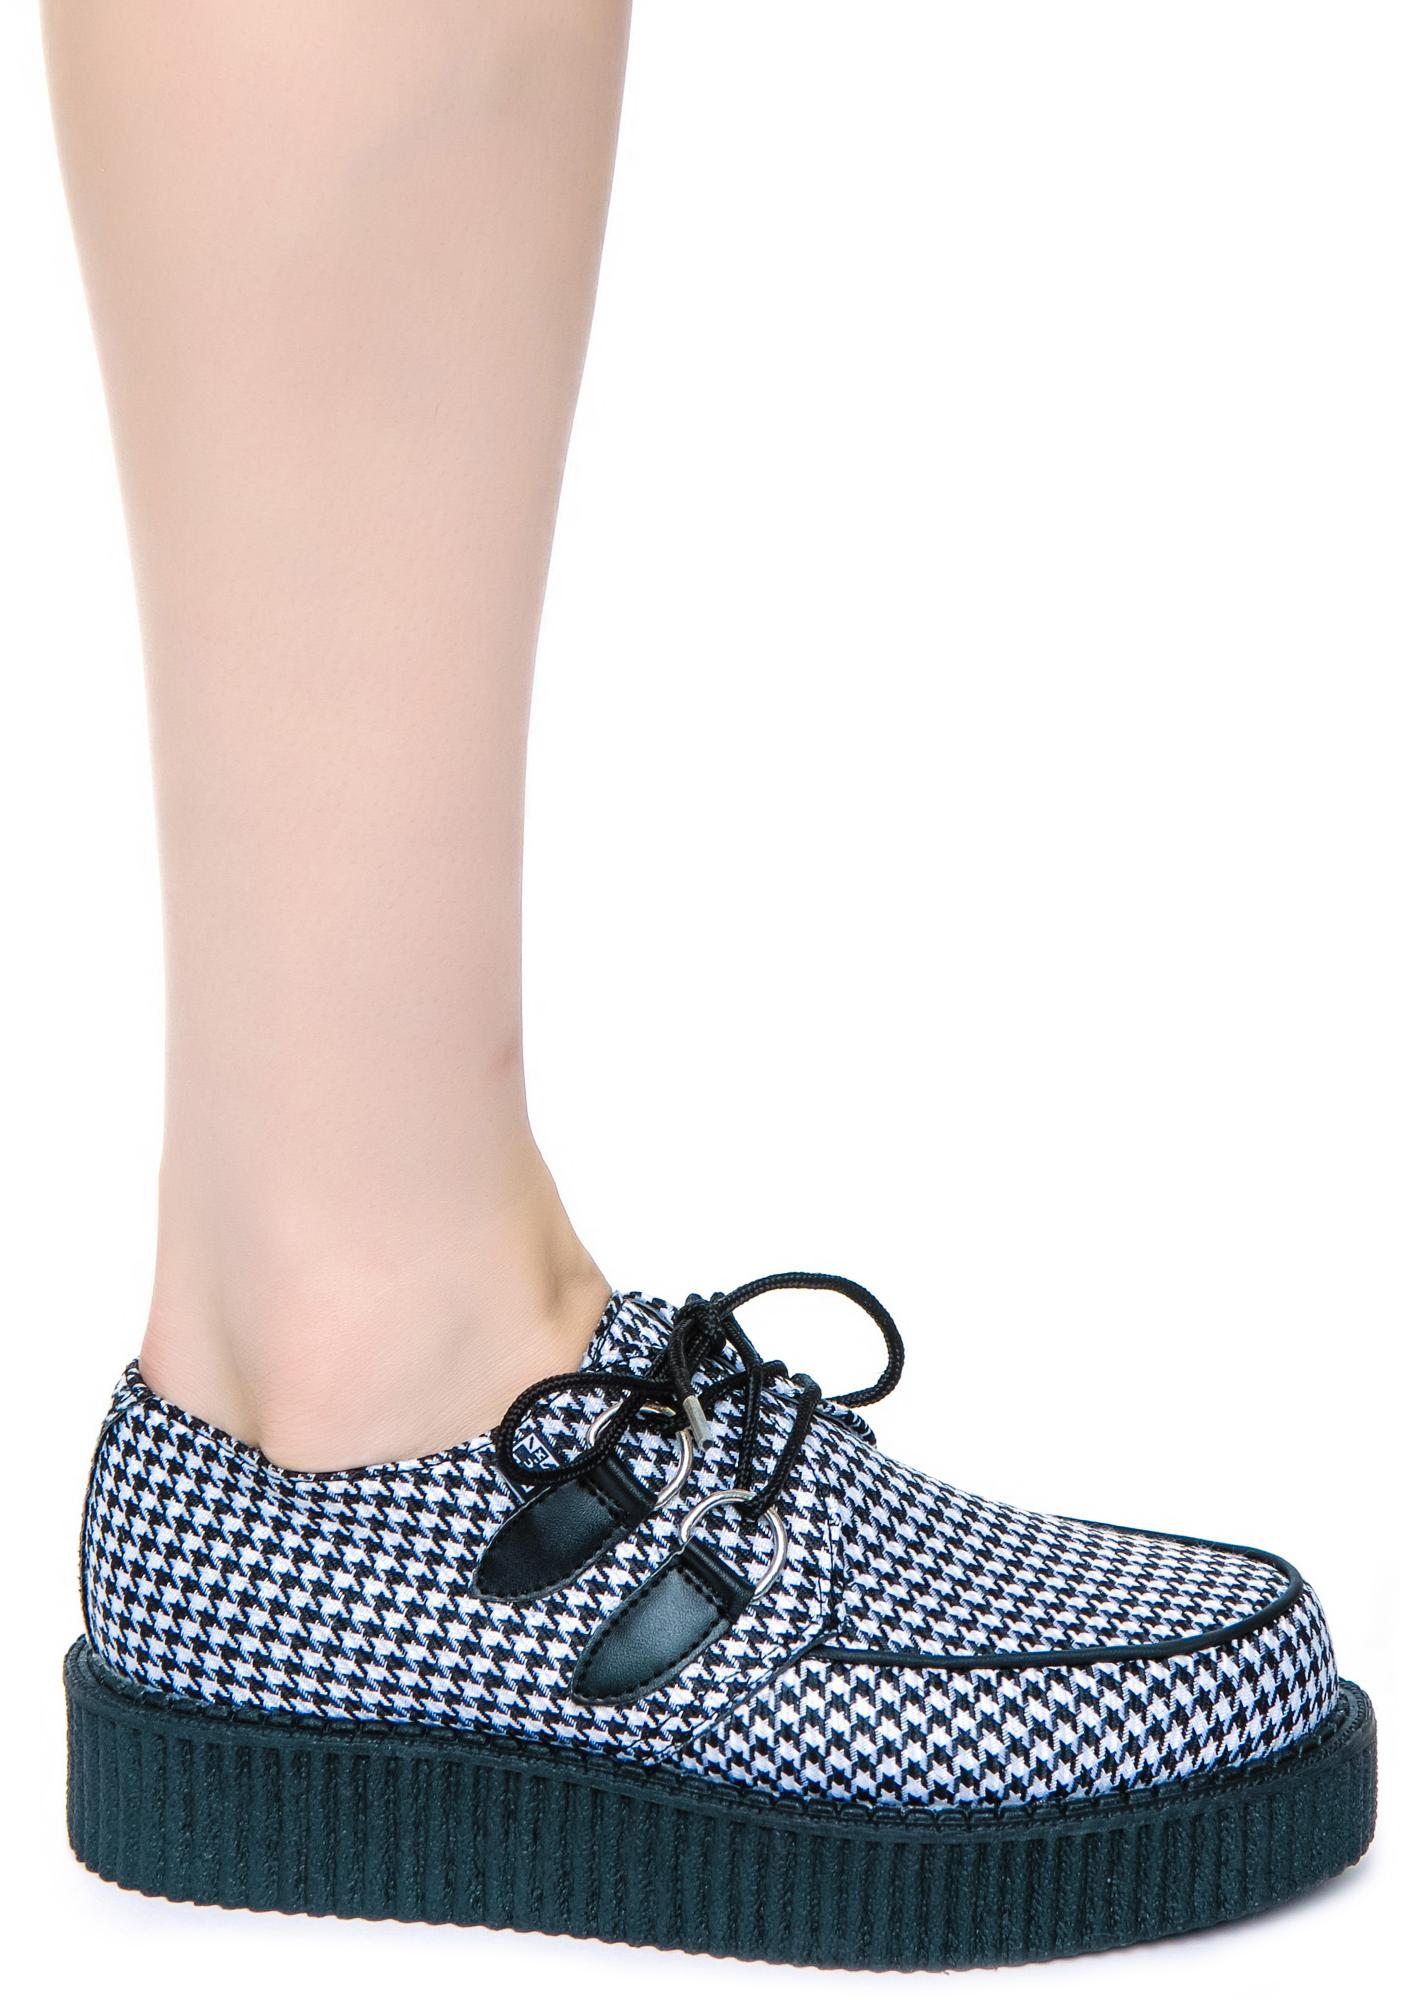 T.U.K. Houndstooth Round Low Creeper